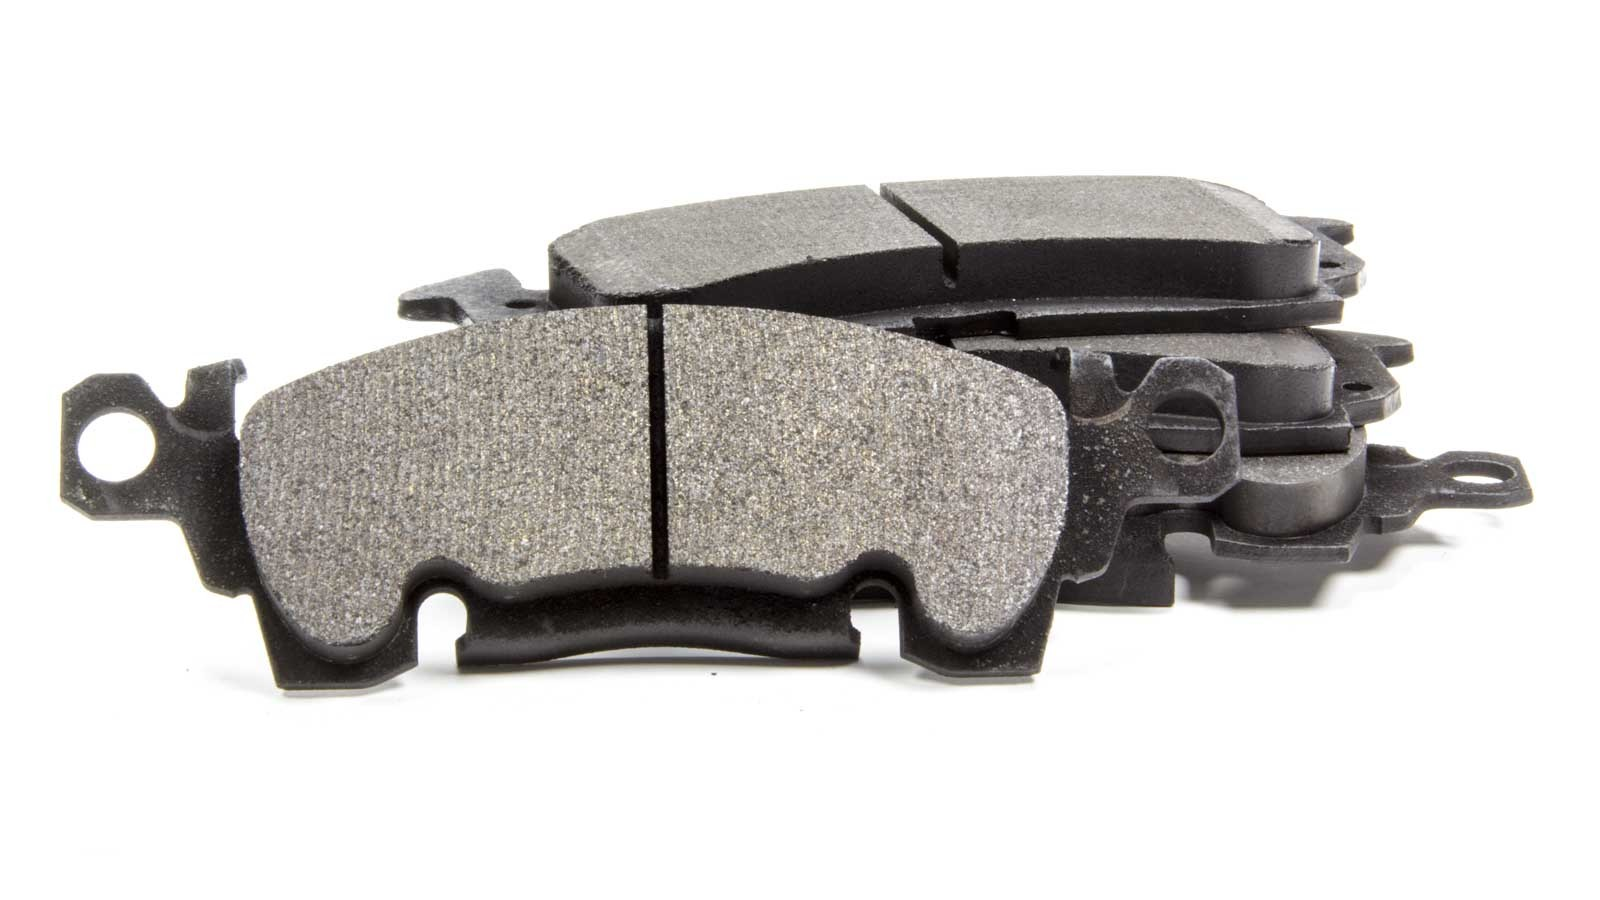 Performance Friction 0052-01-14-44 Brake Pads, 01 Compound, All Temperatures, GM Fullsize Calipers, Set of 4